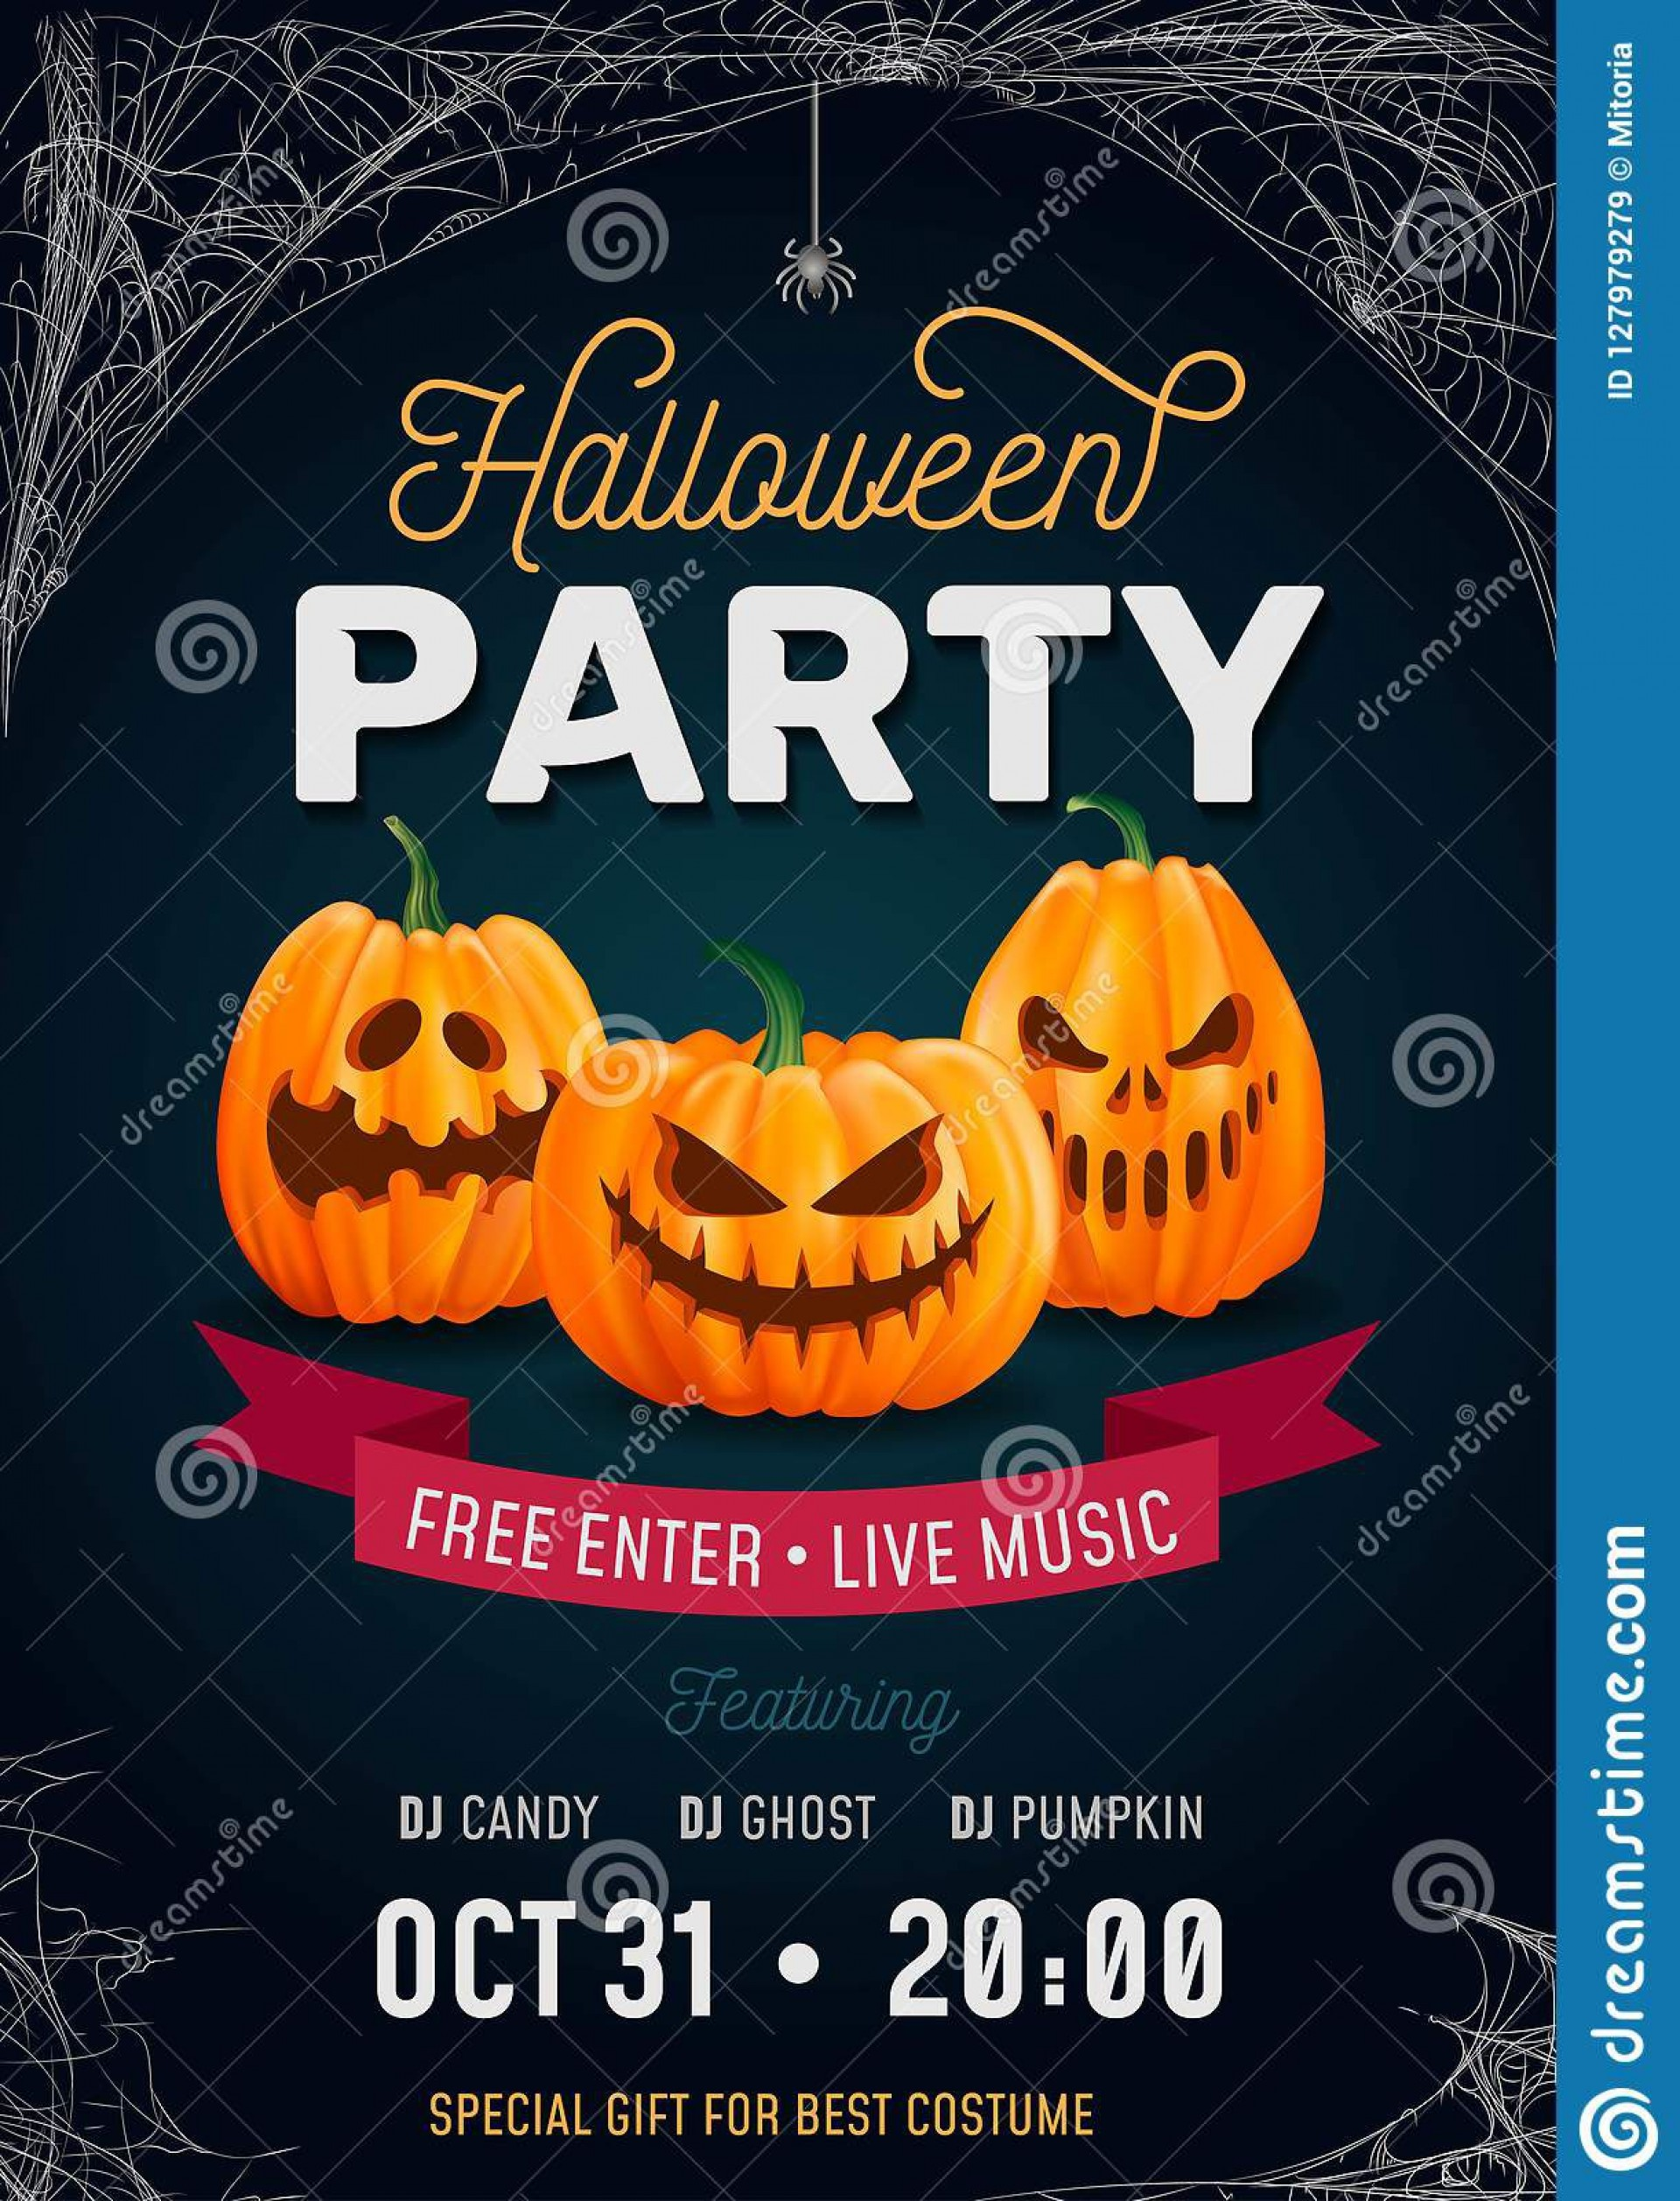 001 Surprising Free Halloween Invitation Template Highest Clarity  Templates Microsoft Word Wedding Printable Party1920